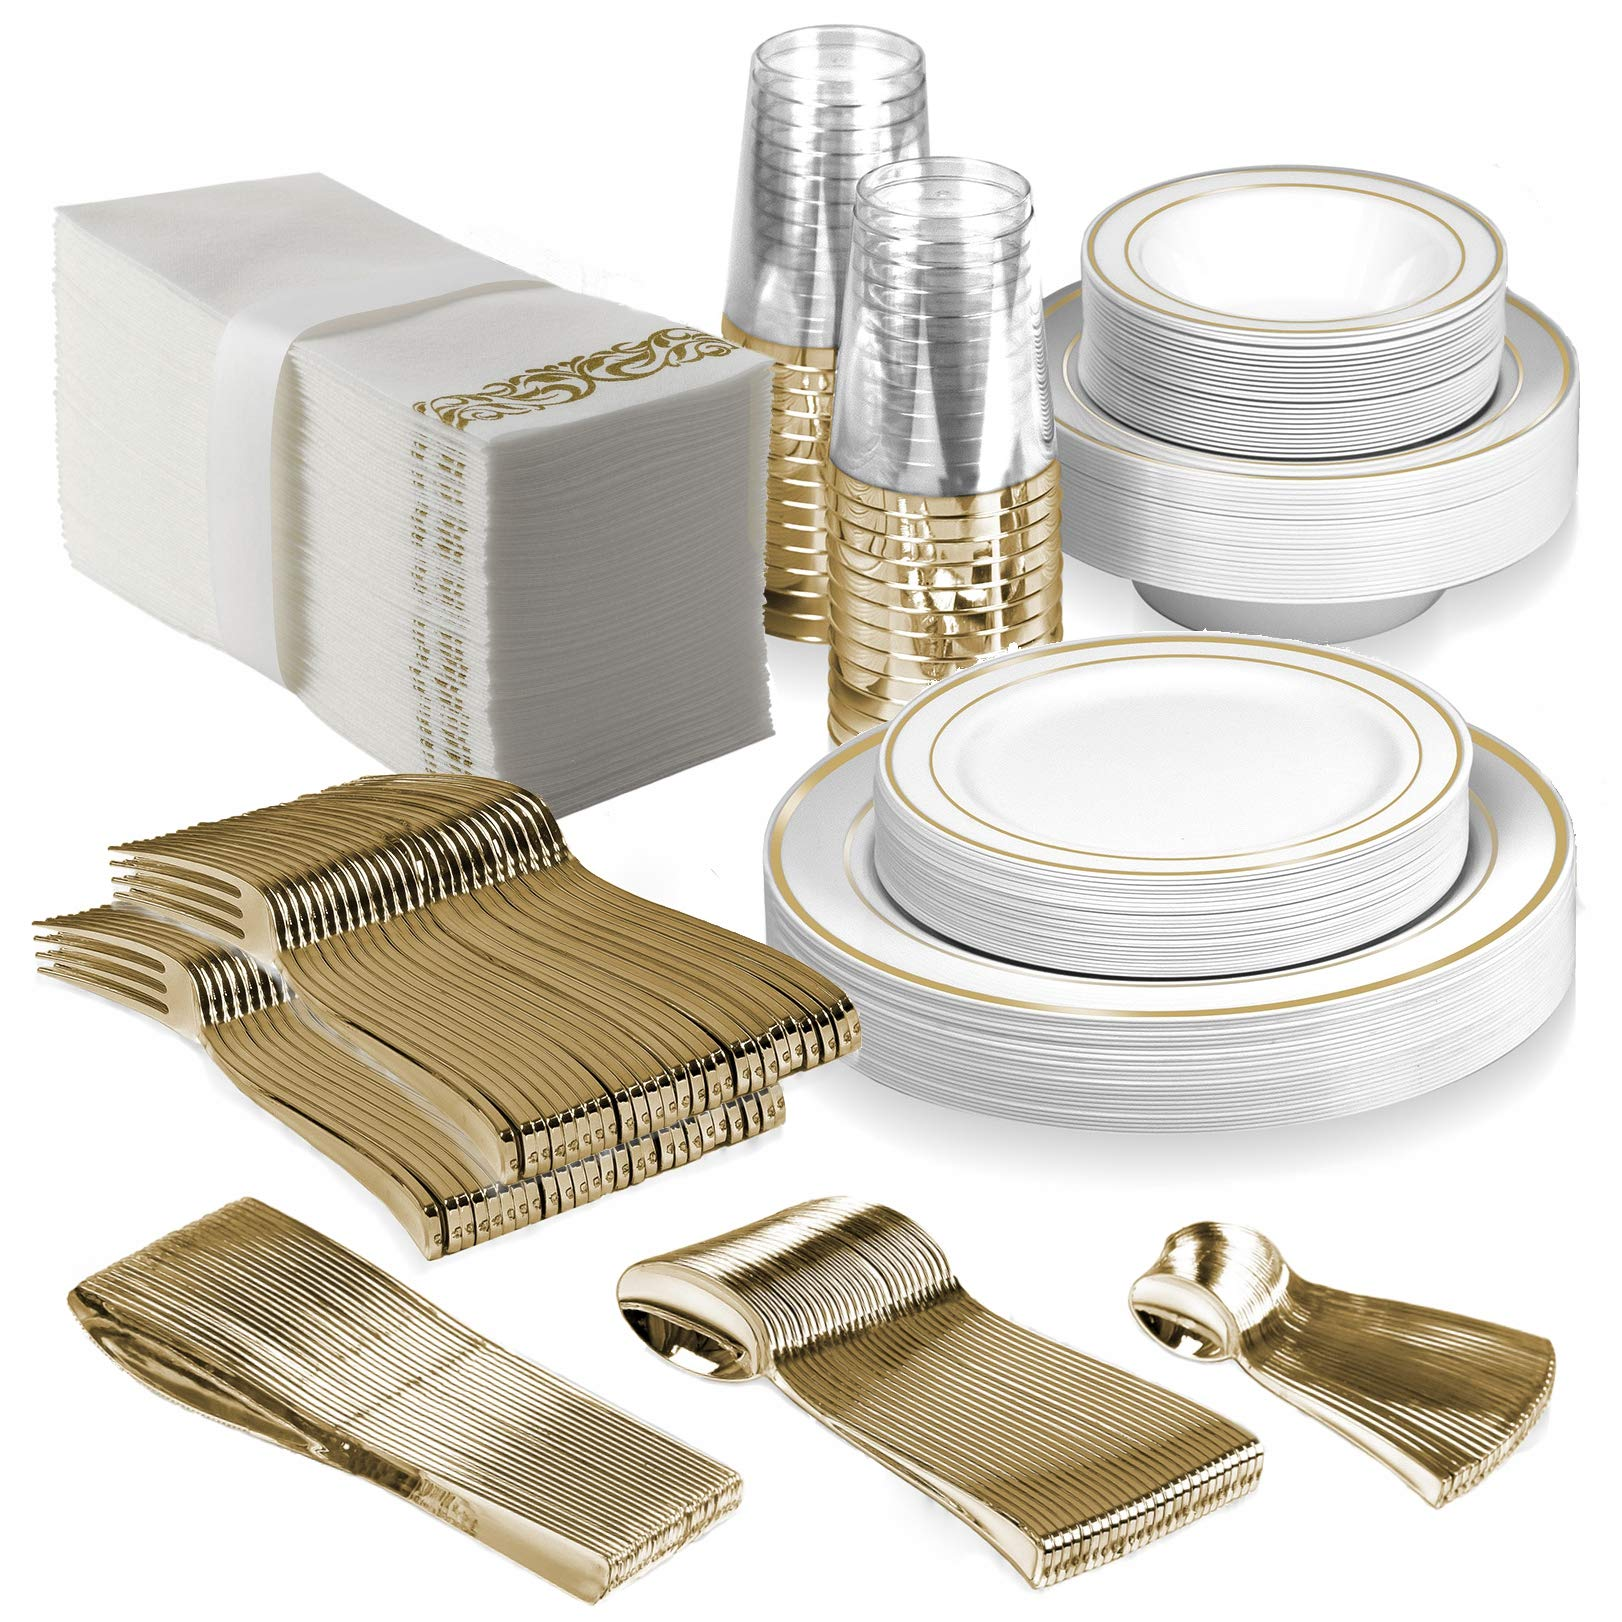 25 Guest Disposable Gold Dinnerware Set | Heavy Duty Plastic Plates, Cups, Silverware & Napkins. 50 Forks, 25 Spoons, 25 Dessert Spoons, 25 Knives, 25 Dinner Plates, 25 Dessert Plates, 25 Soup Bowls by BloominGoods (Image #1)